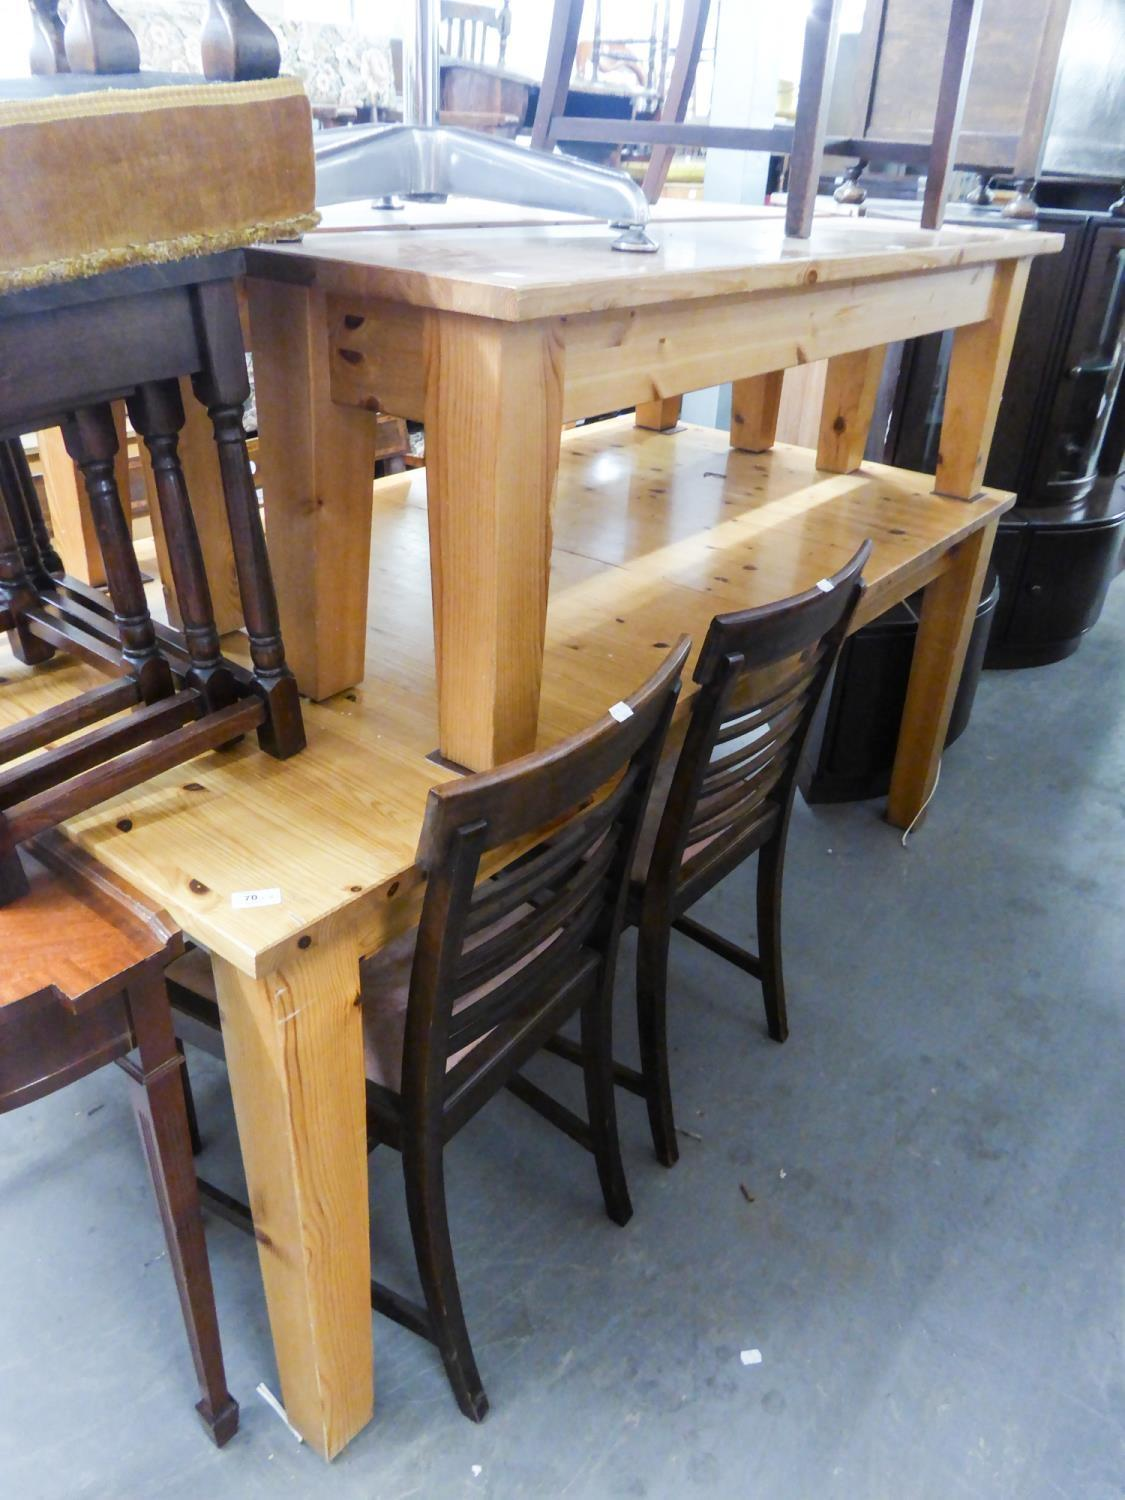 Lot 70 - A LARGE PINE EXTENDING DINING TABLE, WITH TWO BENCH SEATS AND A SIMILAR DINING CHAIR (4)